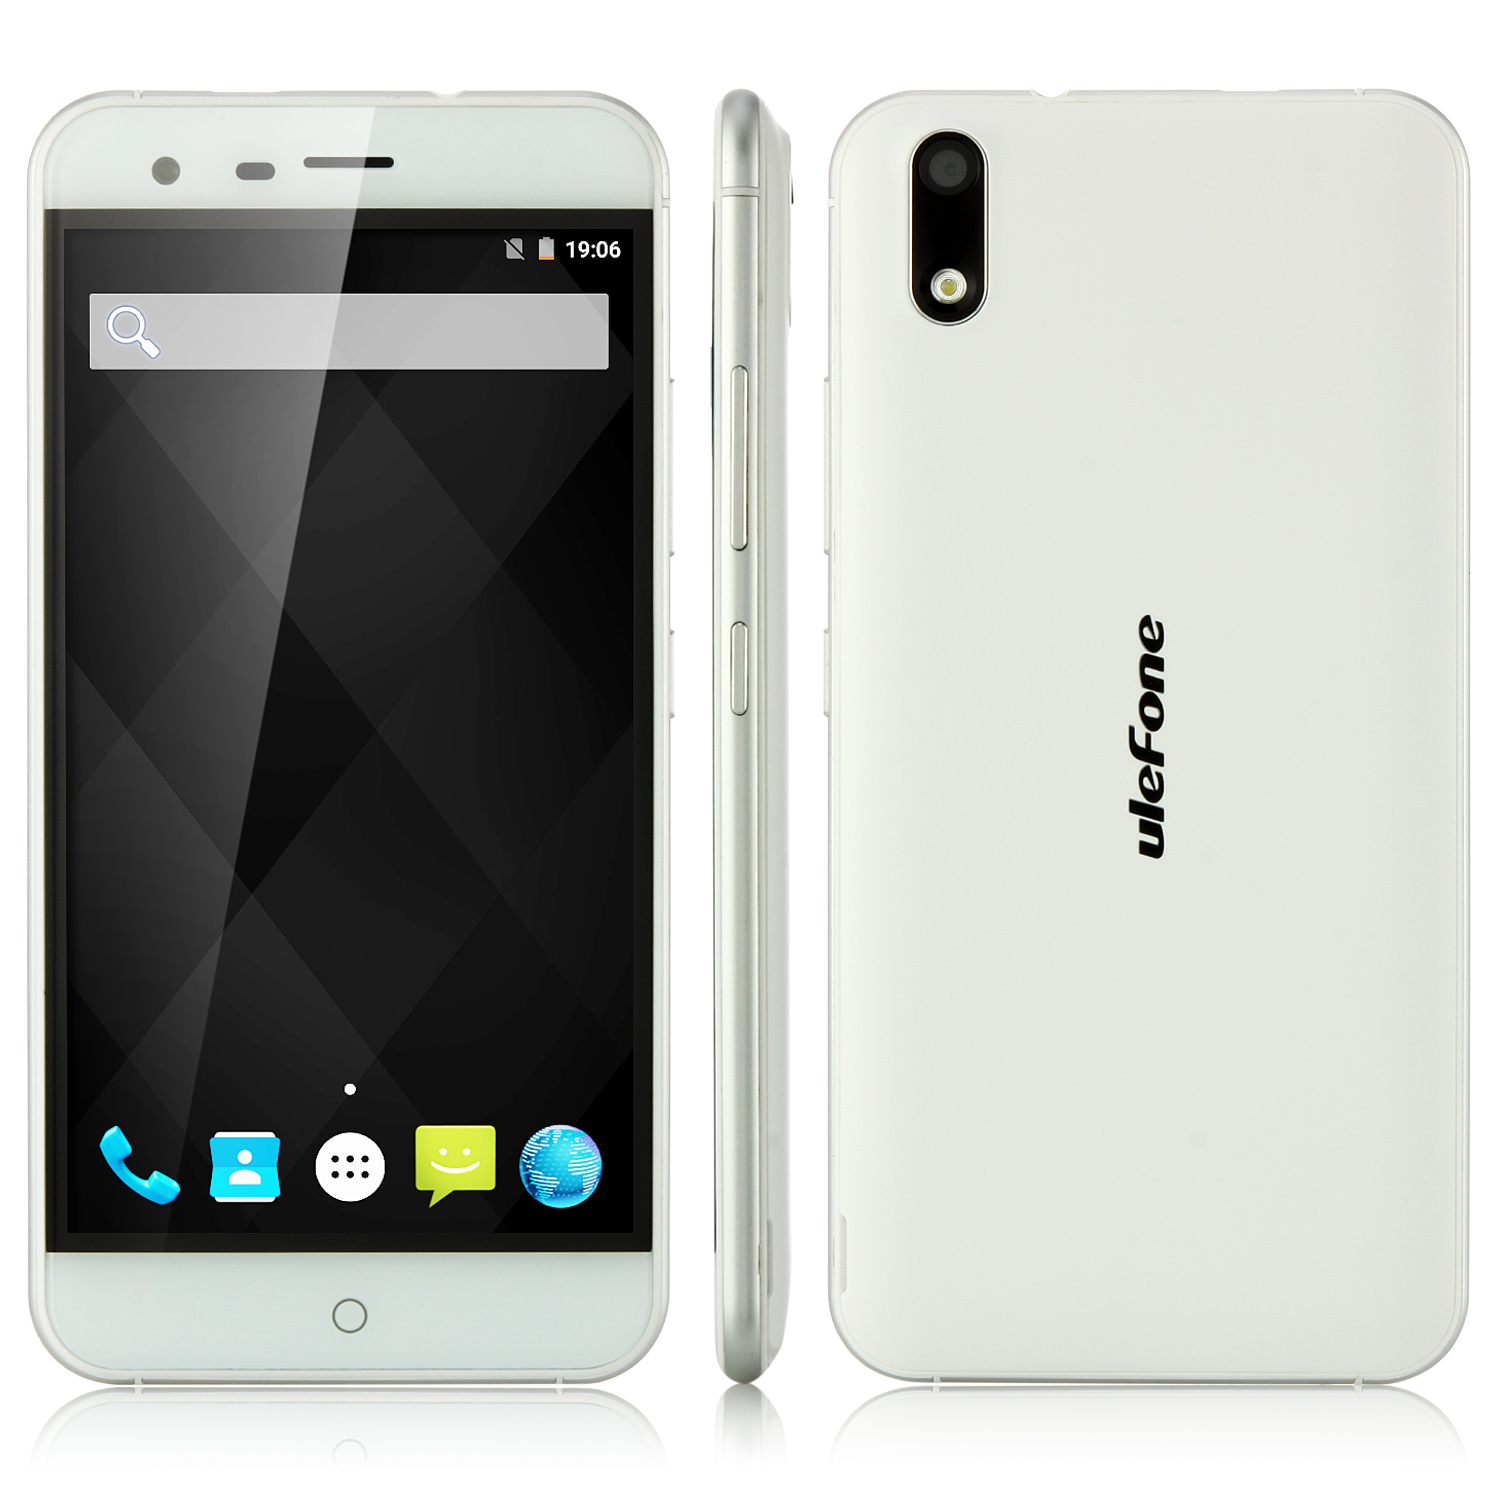 ulefone Paris 4G Smartphone MT6753 Octa Core 2GB 16GB White + Free Accessory Set